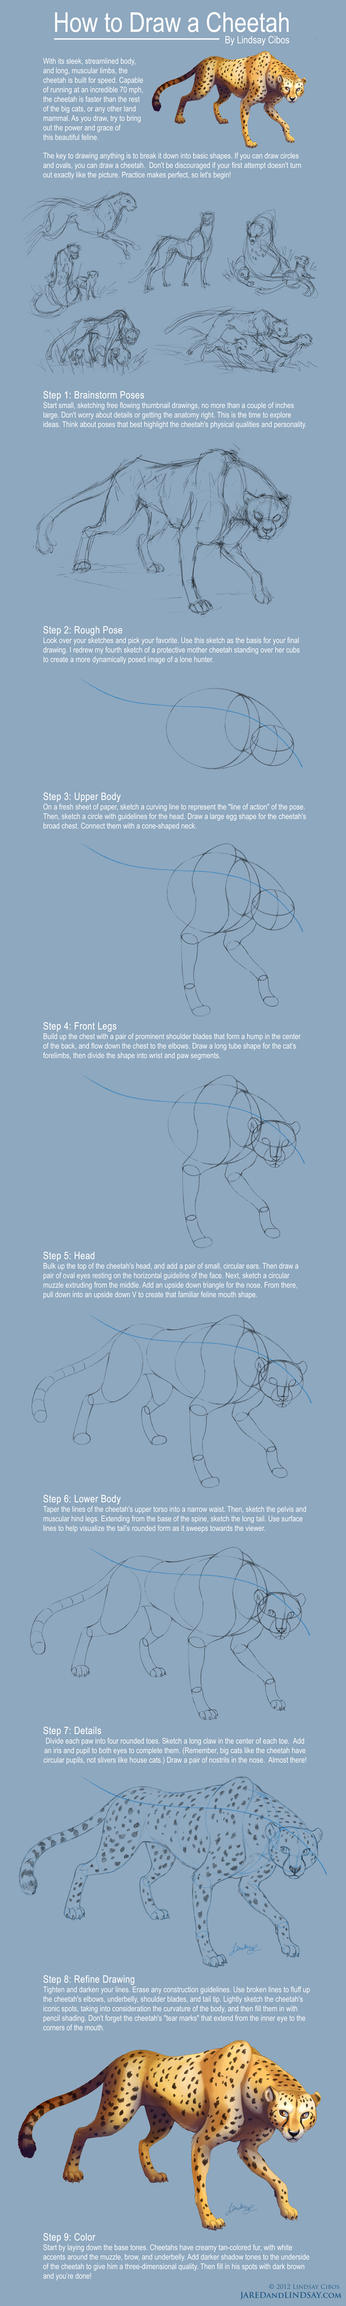 How To Draw A Cheetah by LCibos